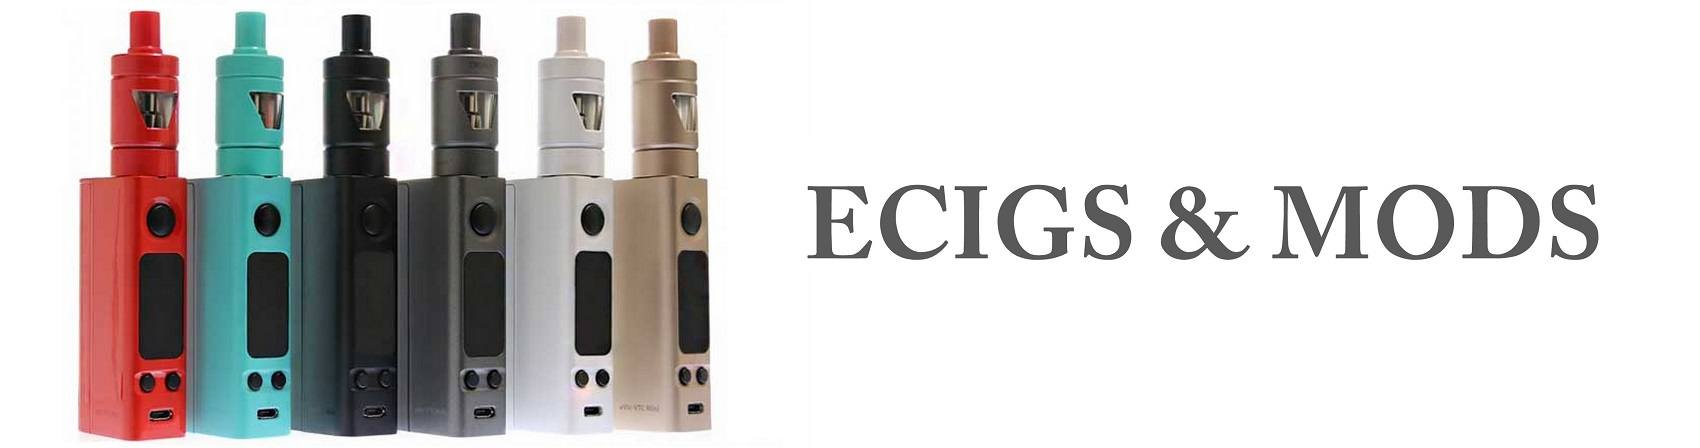 image of Vape